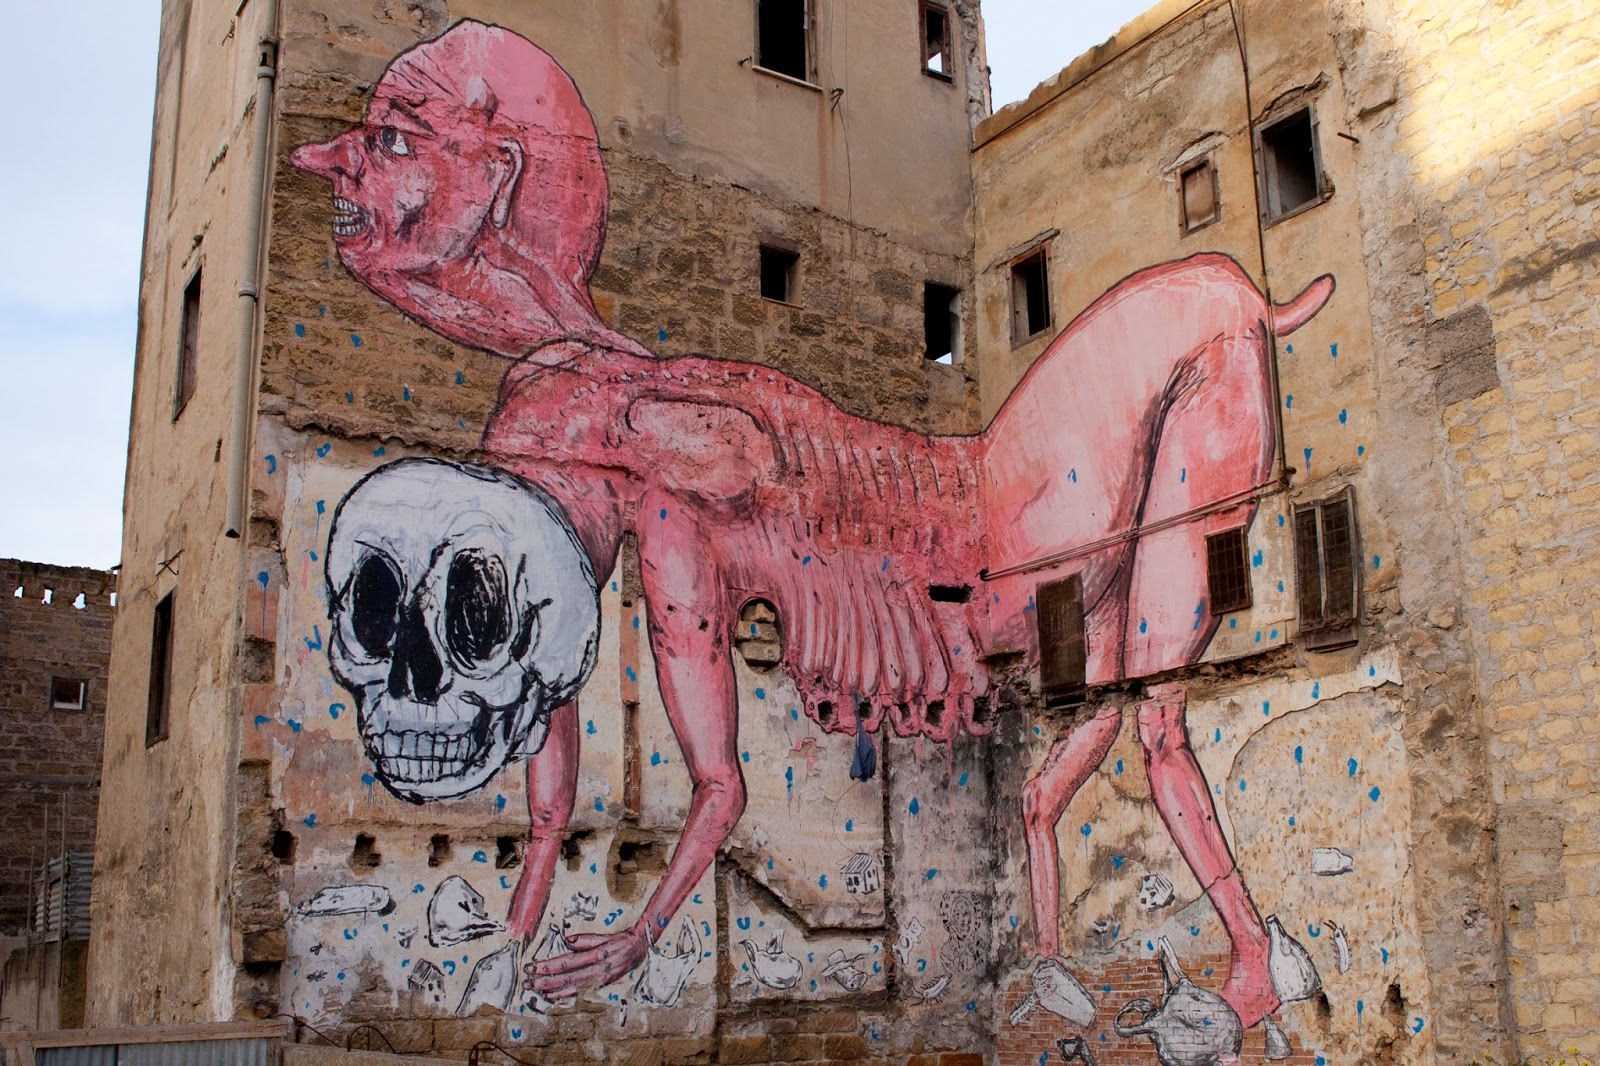 emajons-new-mural-in-vucciria-and-kalsa-palermo-06